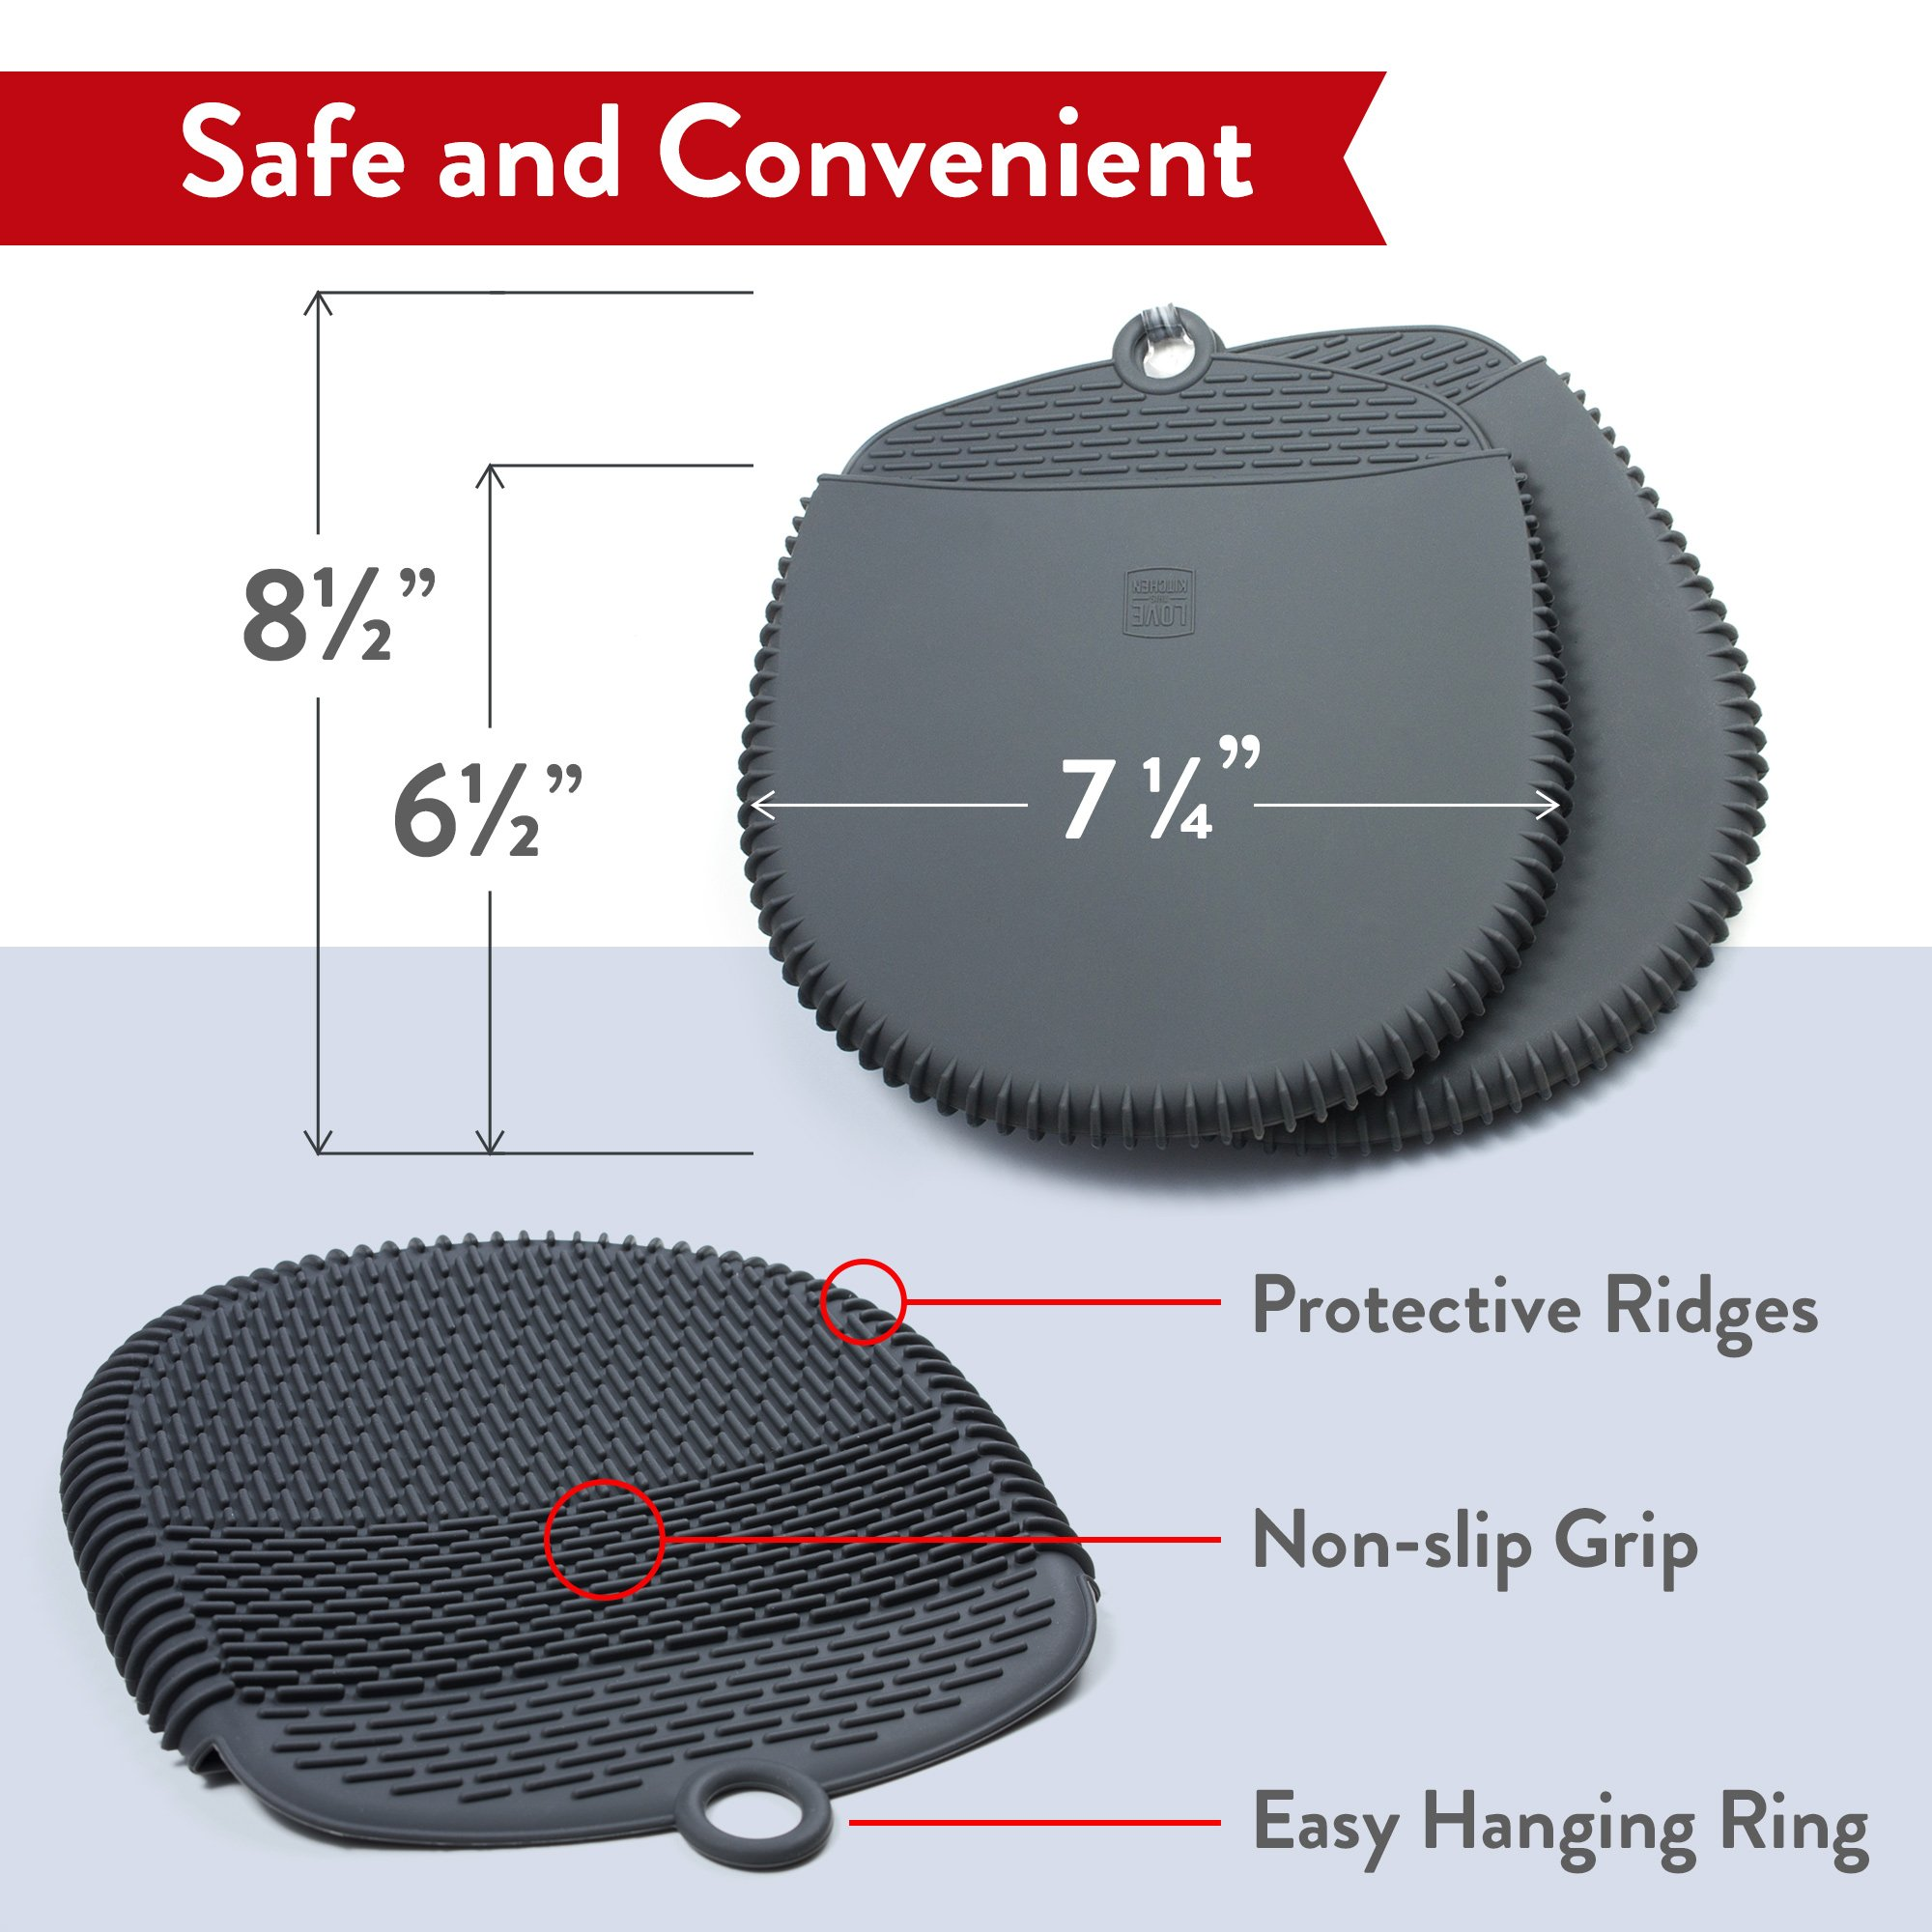 The Ultimate Pot Holders / Oven Mitts | 100% Silicone Mitt is Healthier Than Cotton & Easier to Clean, Won't Grow Mold or Bacteria | Unique Design Makes it Safe, Non-Slip & Flexible (Gray, Set of 2) by Love This Kitchen (Image #2)